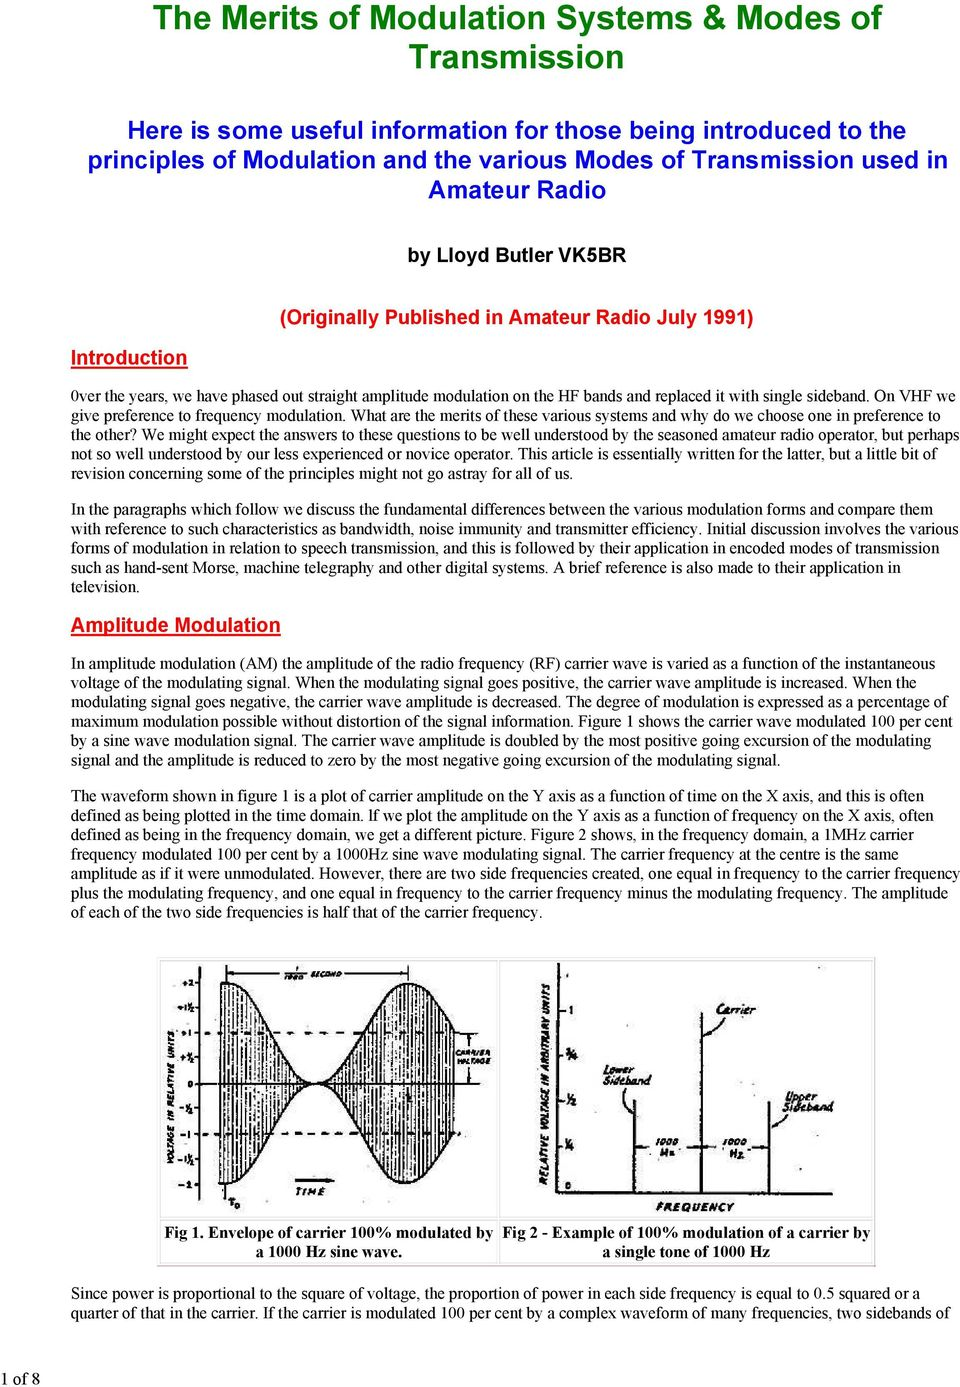 The Merits Of Modulation Systems Modes Transmission Pdf Frequency Fm Tutorial Electronics Modulator On Vhf We Give Preference To What Are